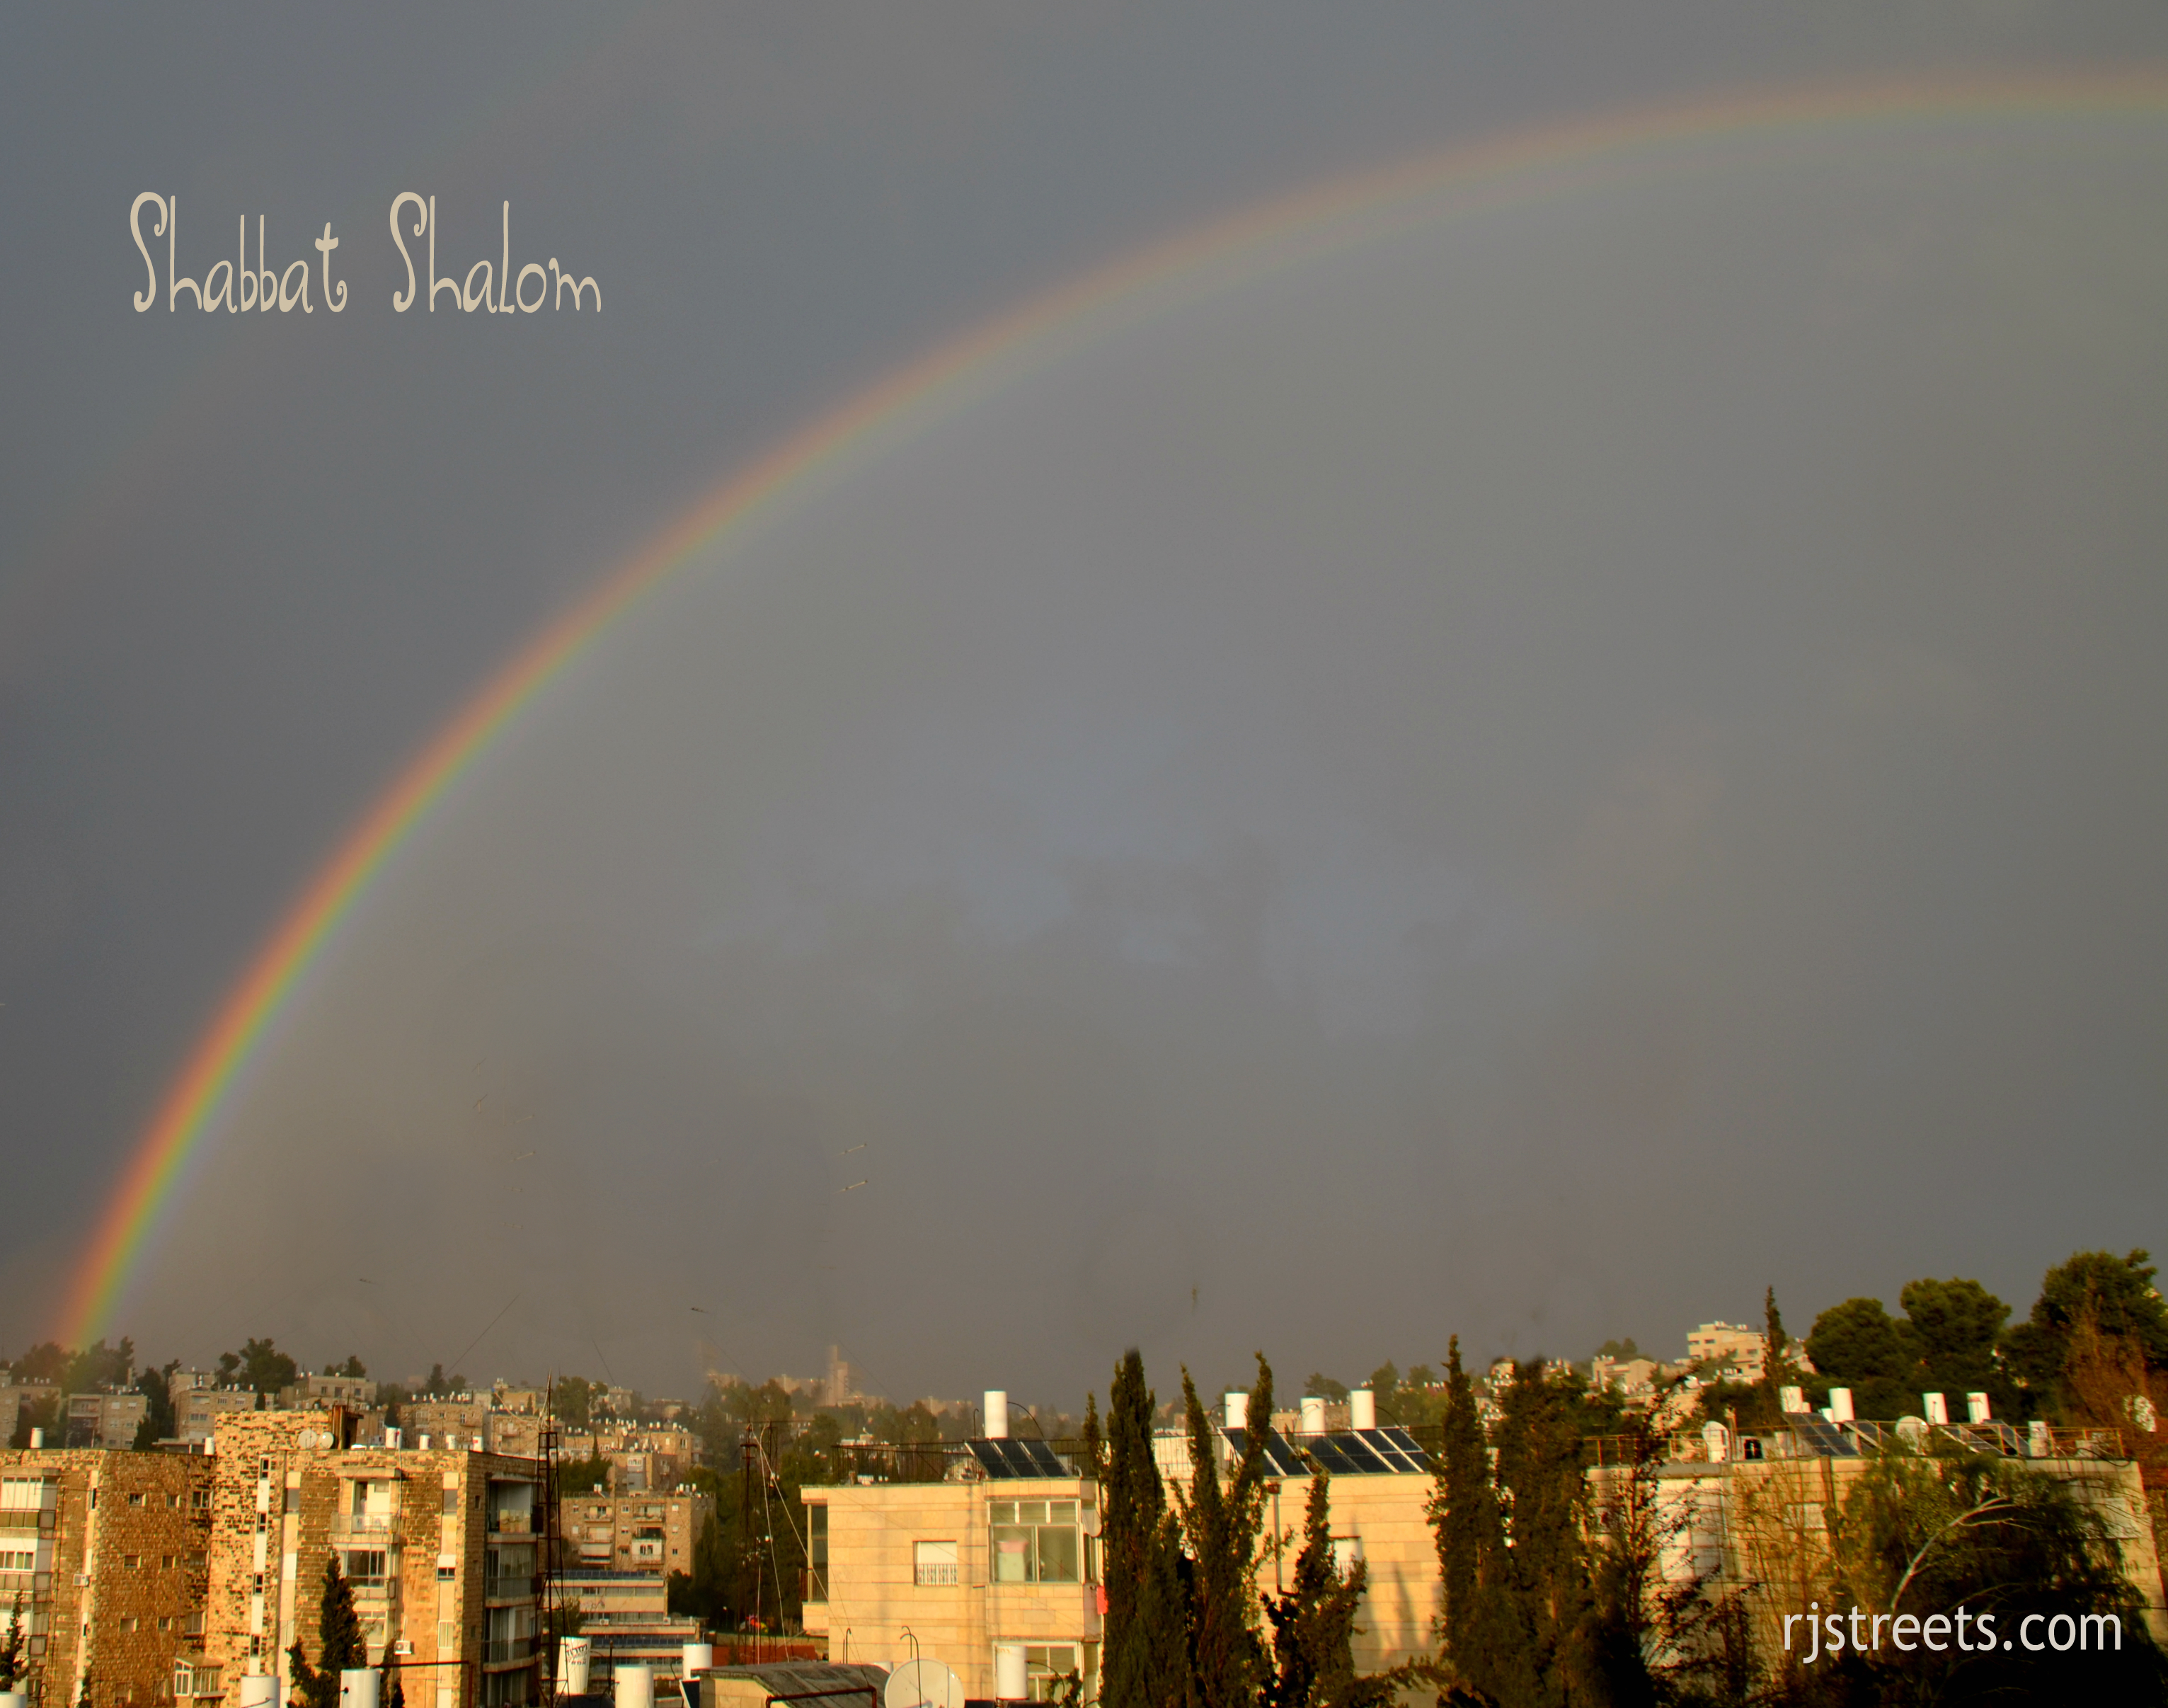 shabbos poster with rainbow